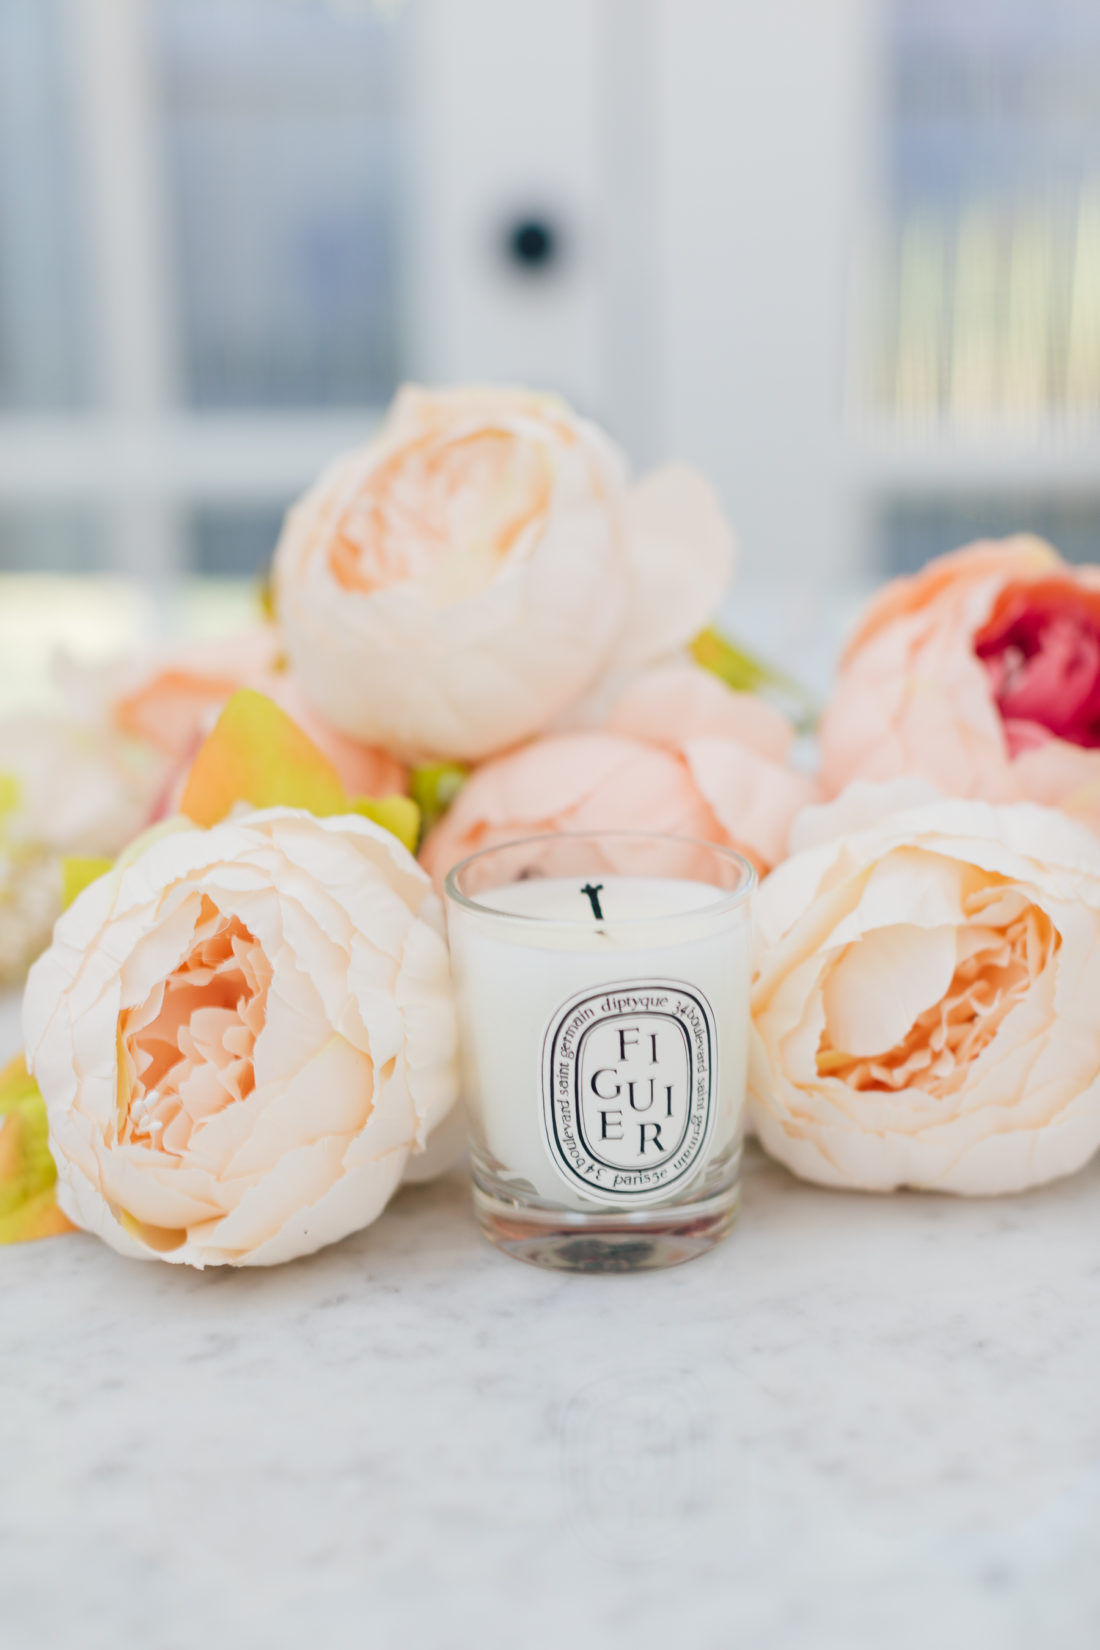 Eva's Obsessions October 2019 includes this yummy Diptyque FIGUIER Candle in the Happily Eva After Studio